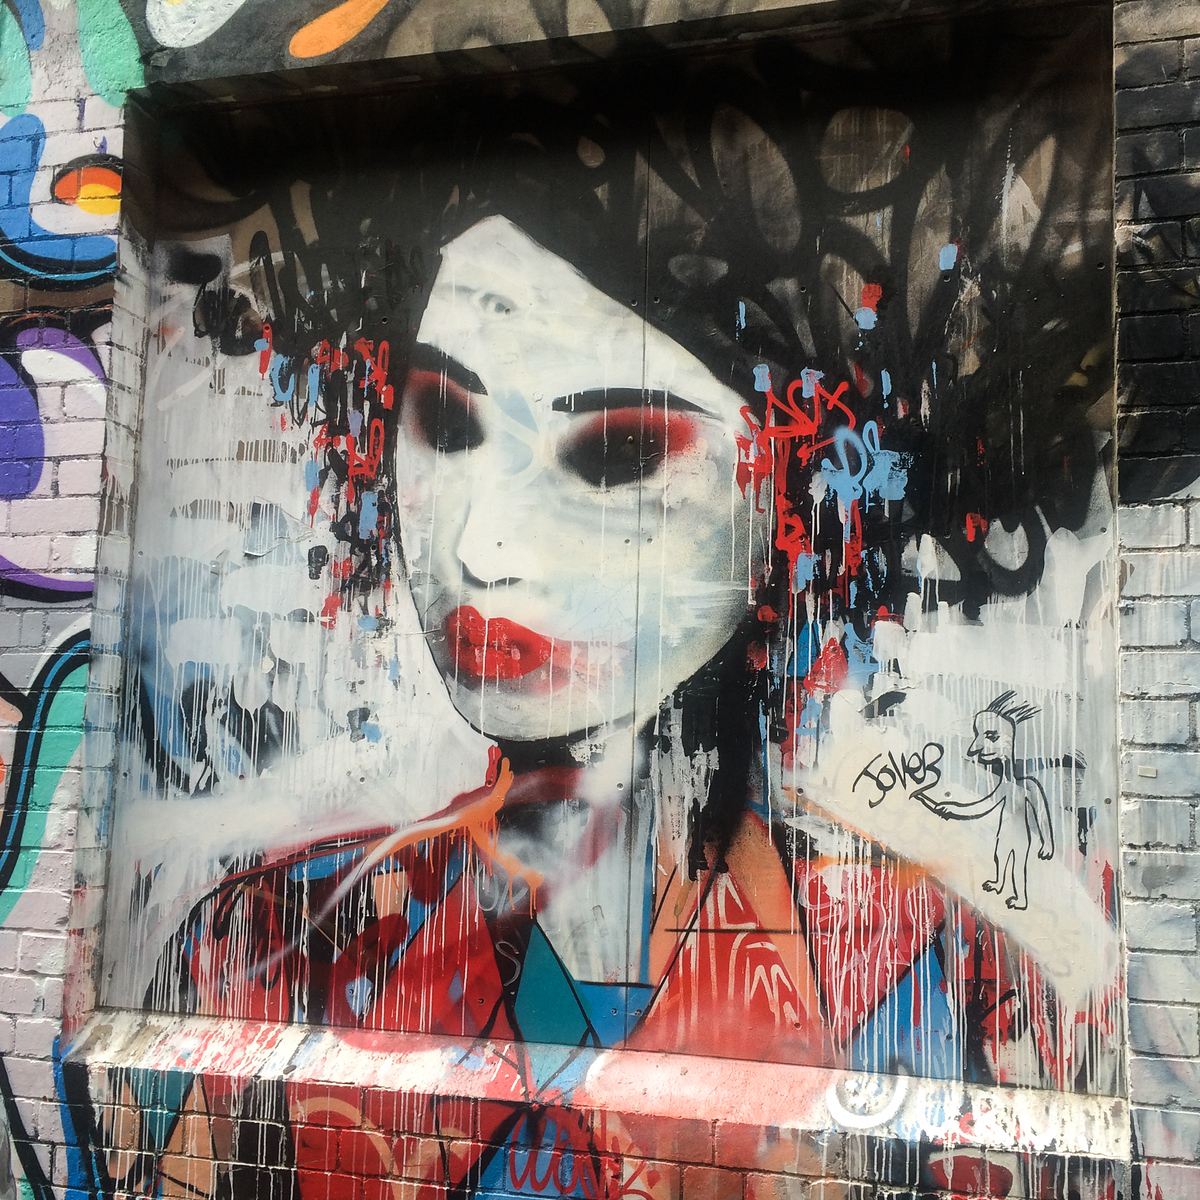 Japanese Lady Graffiti Street Art Melbourne